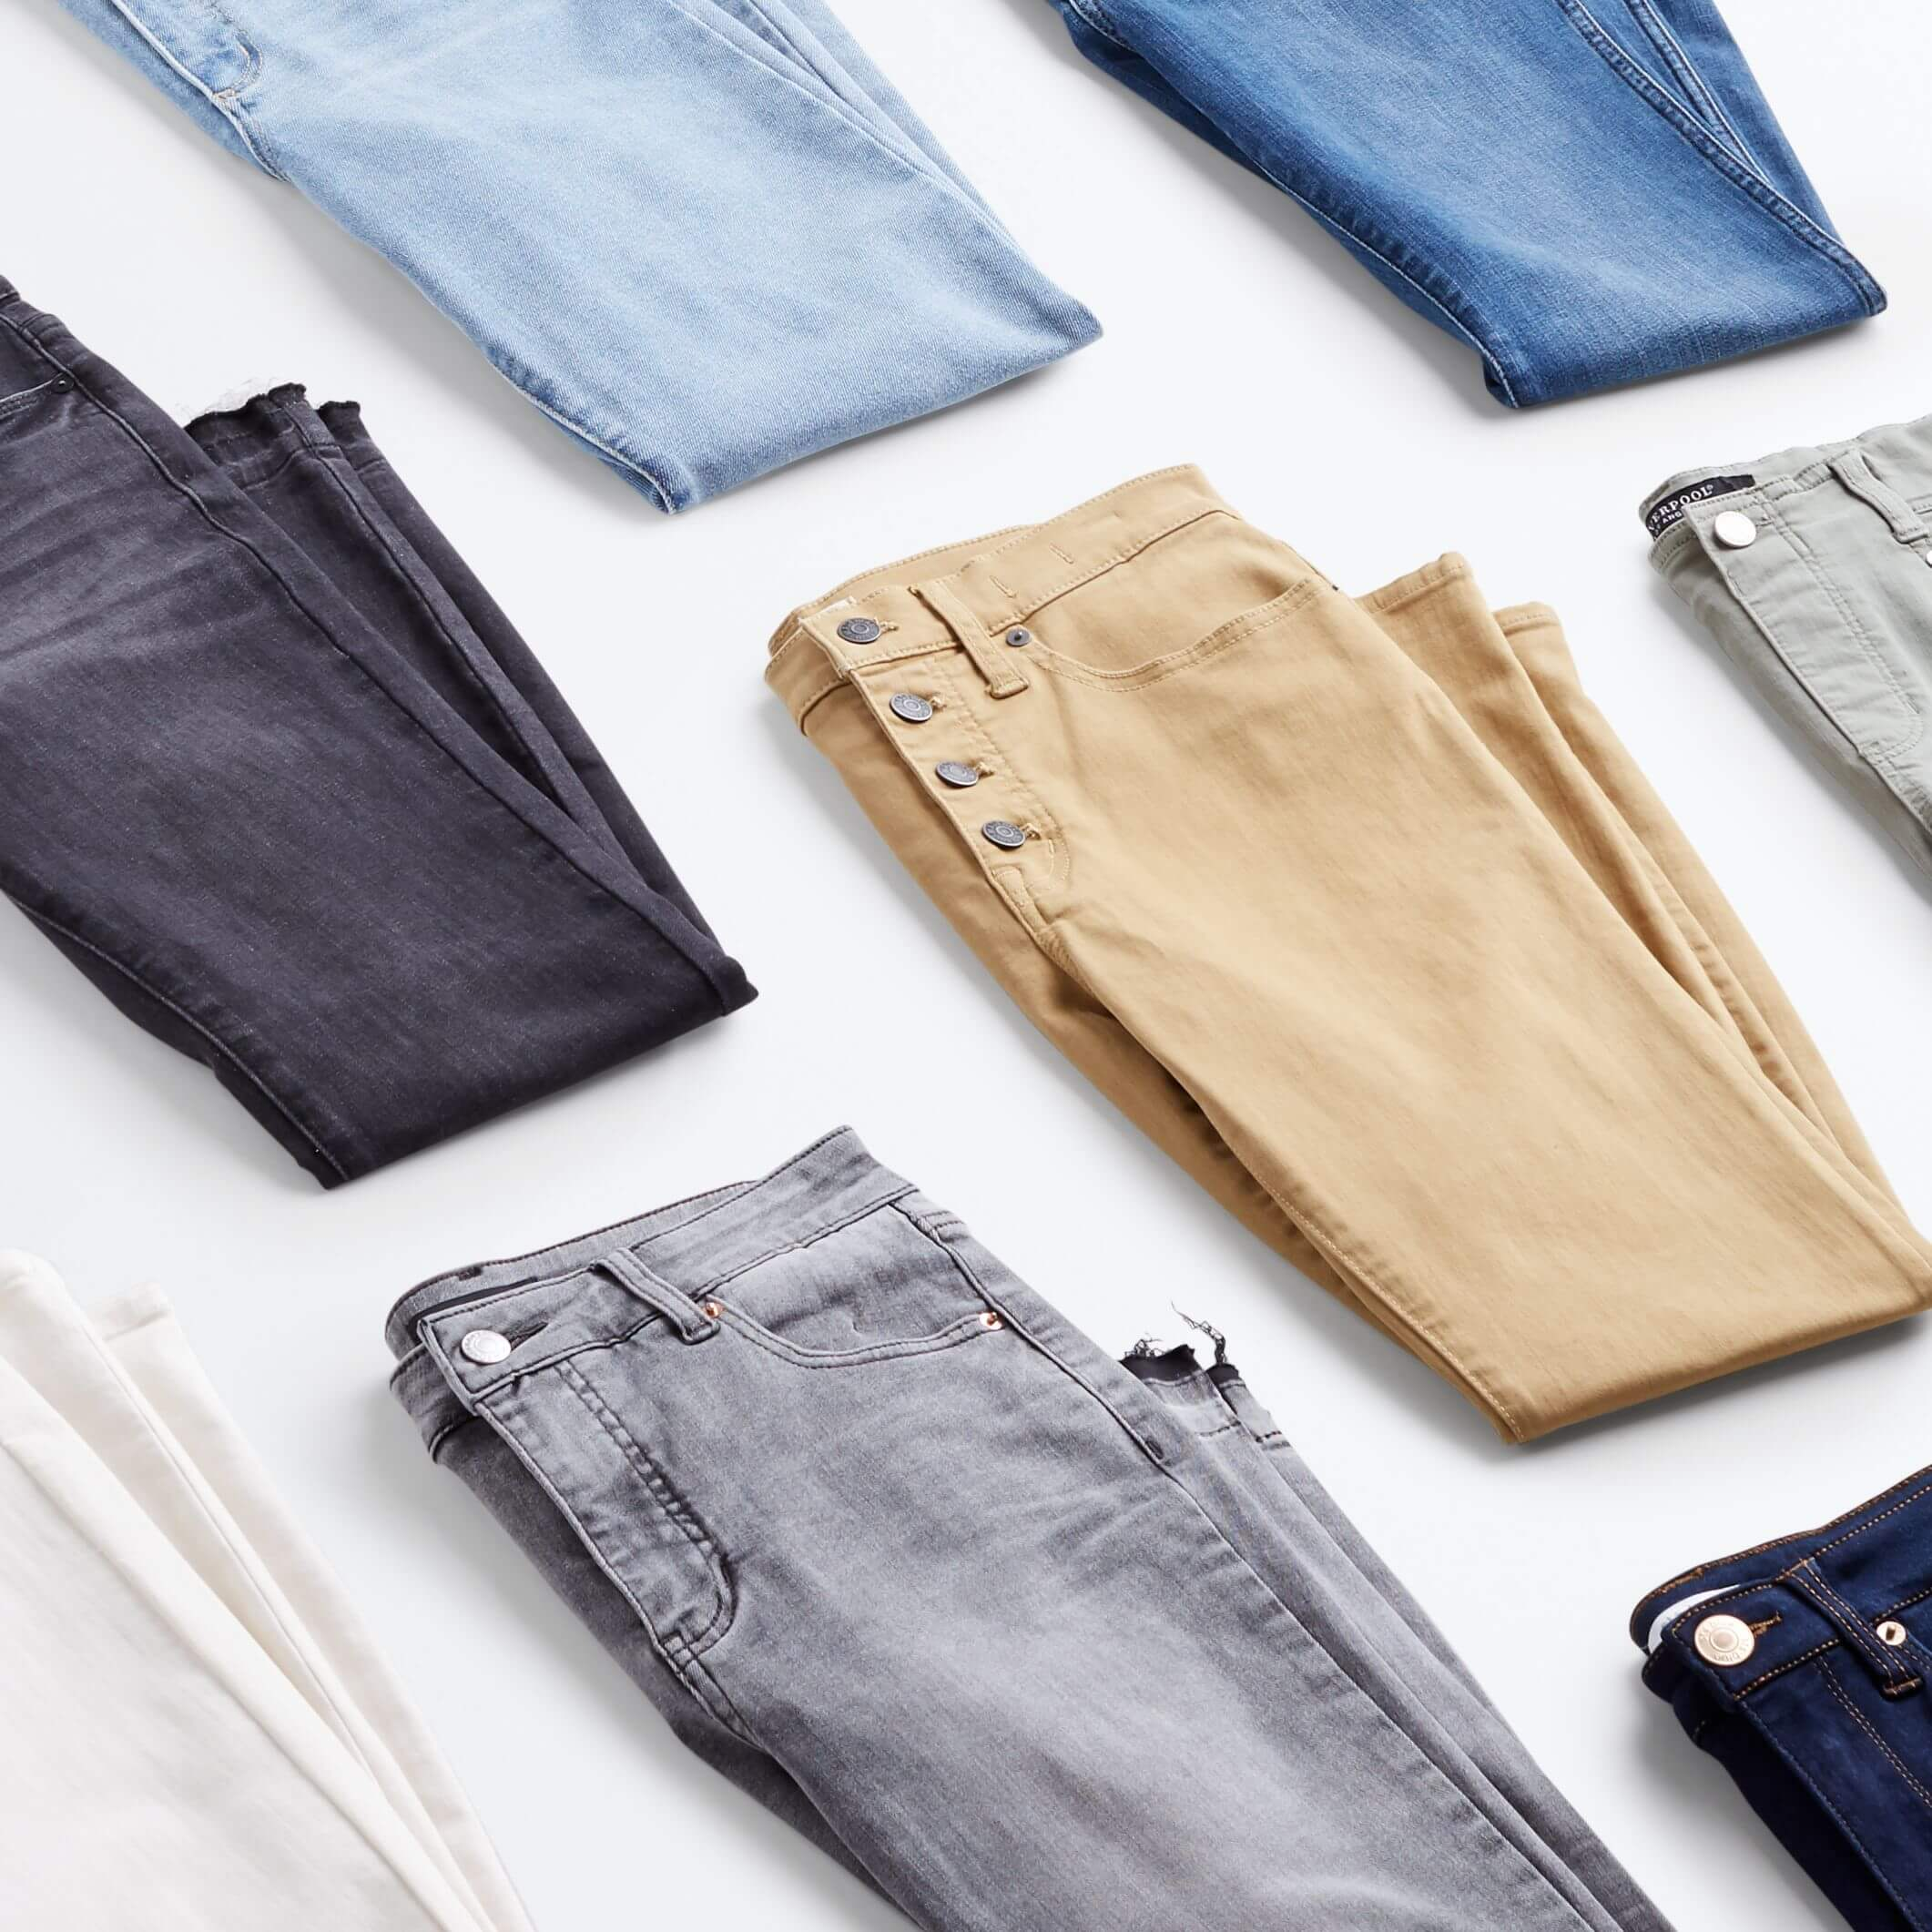 Stitch Fix Women's jeans in blue, gray, white and khaki folded in half.